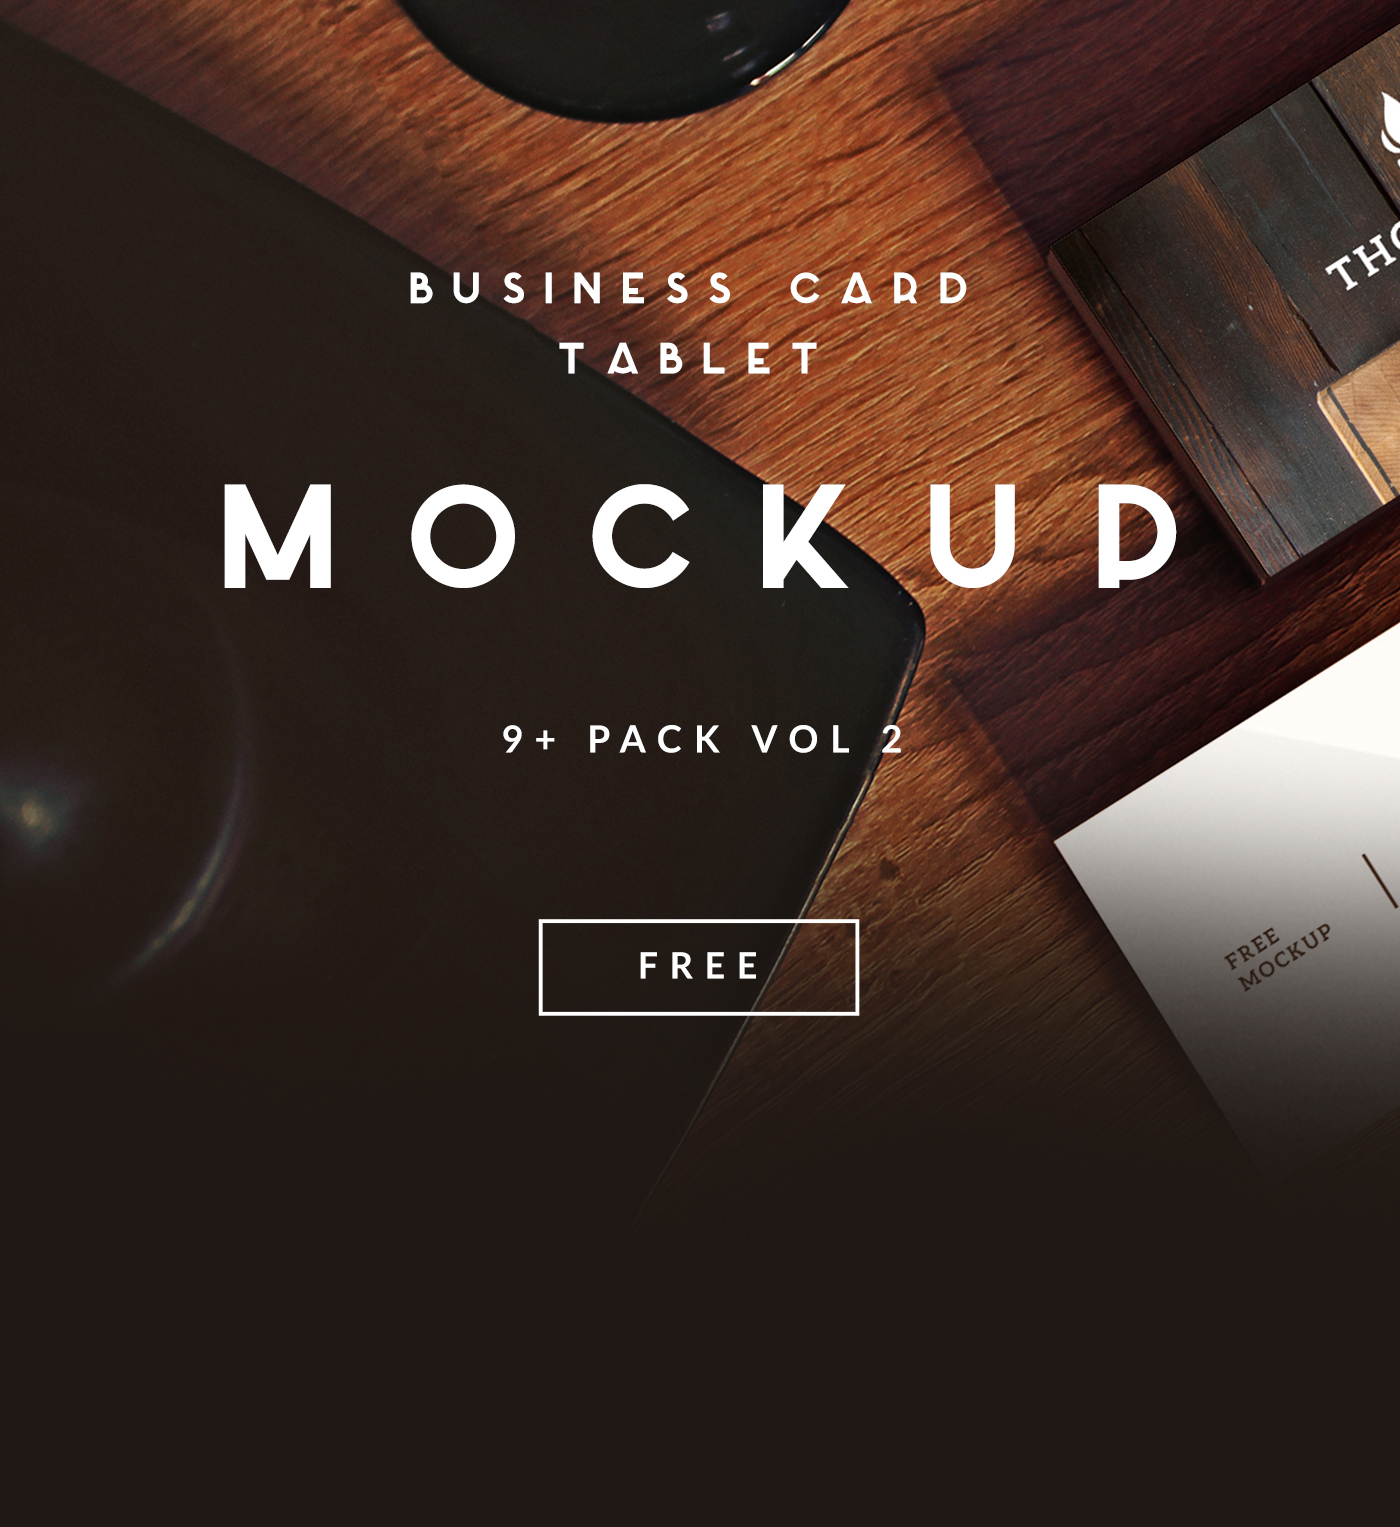 9 business card tablet free mockup vol 2 download on behance reheart Image collections